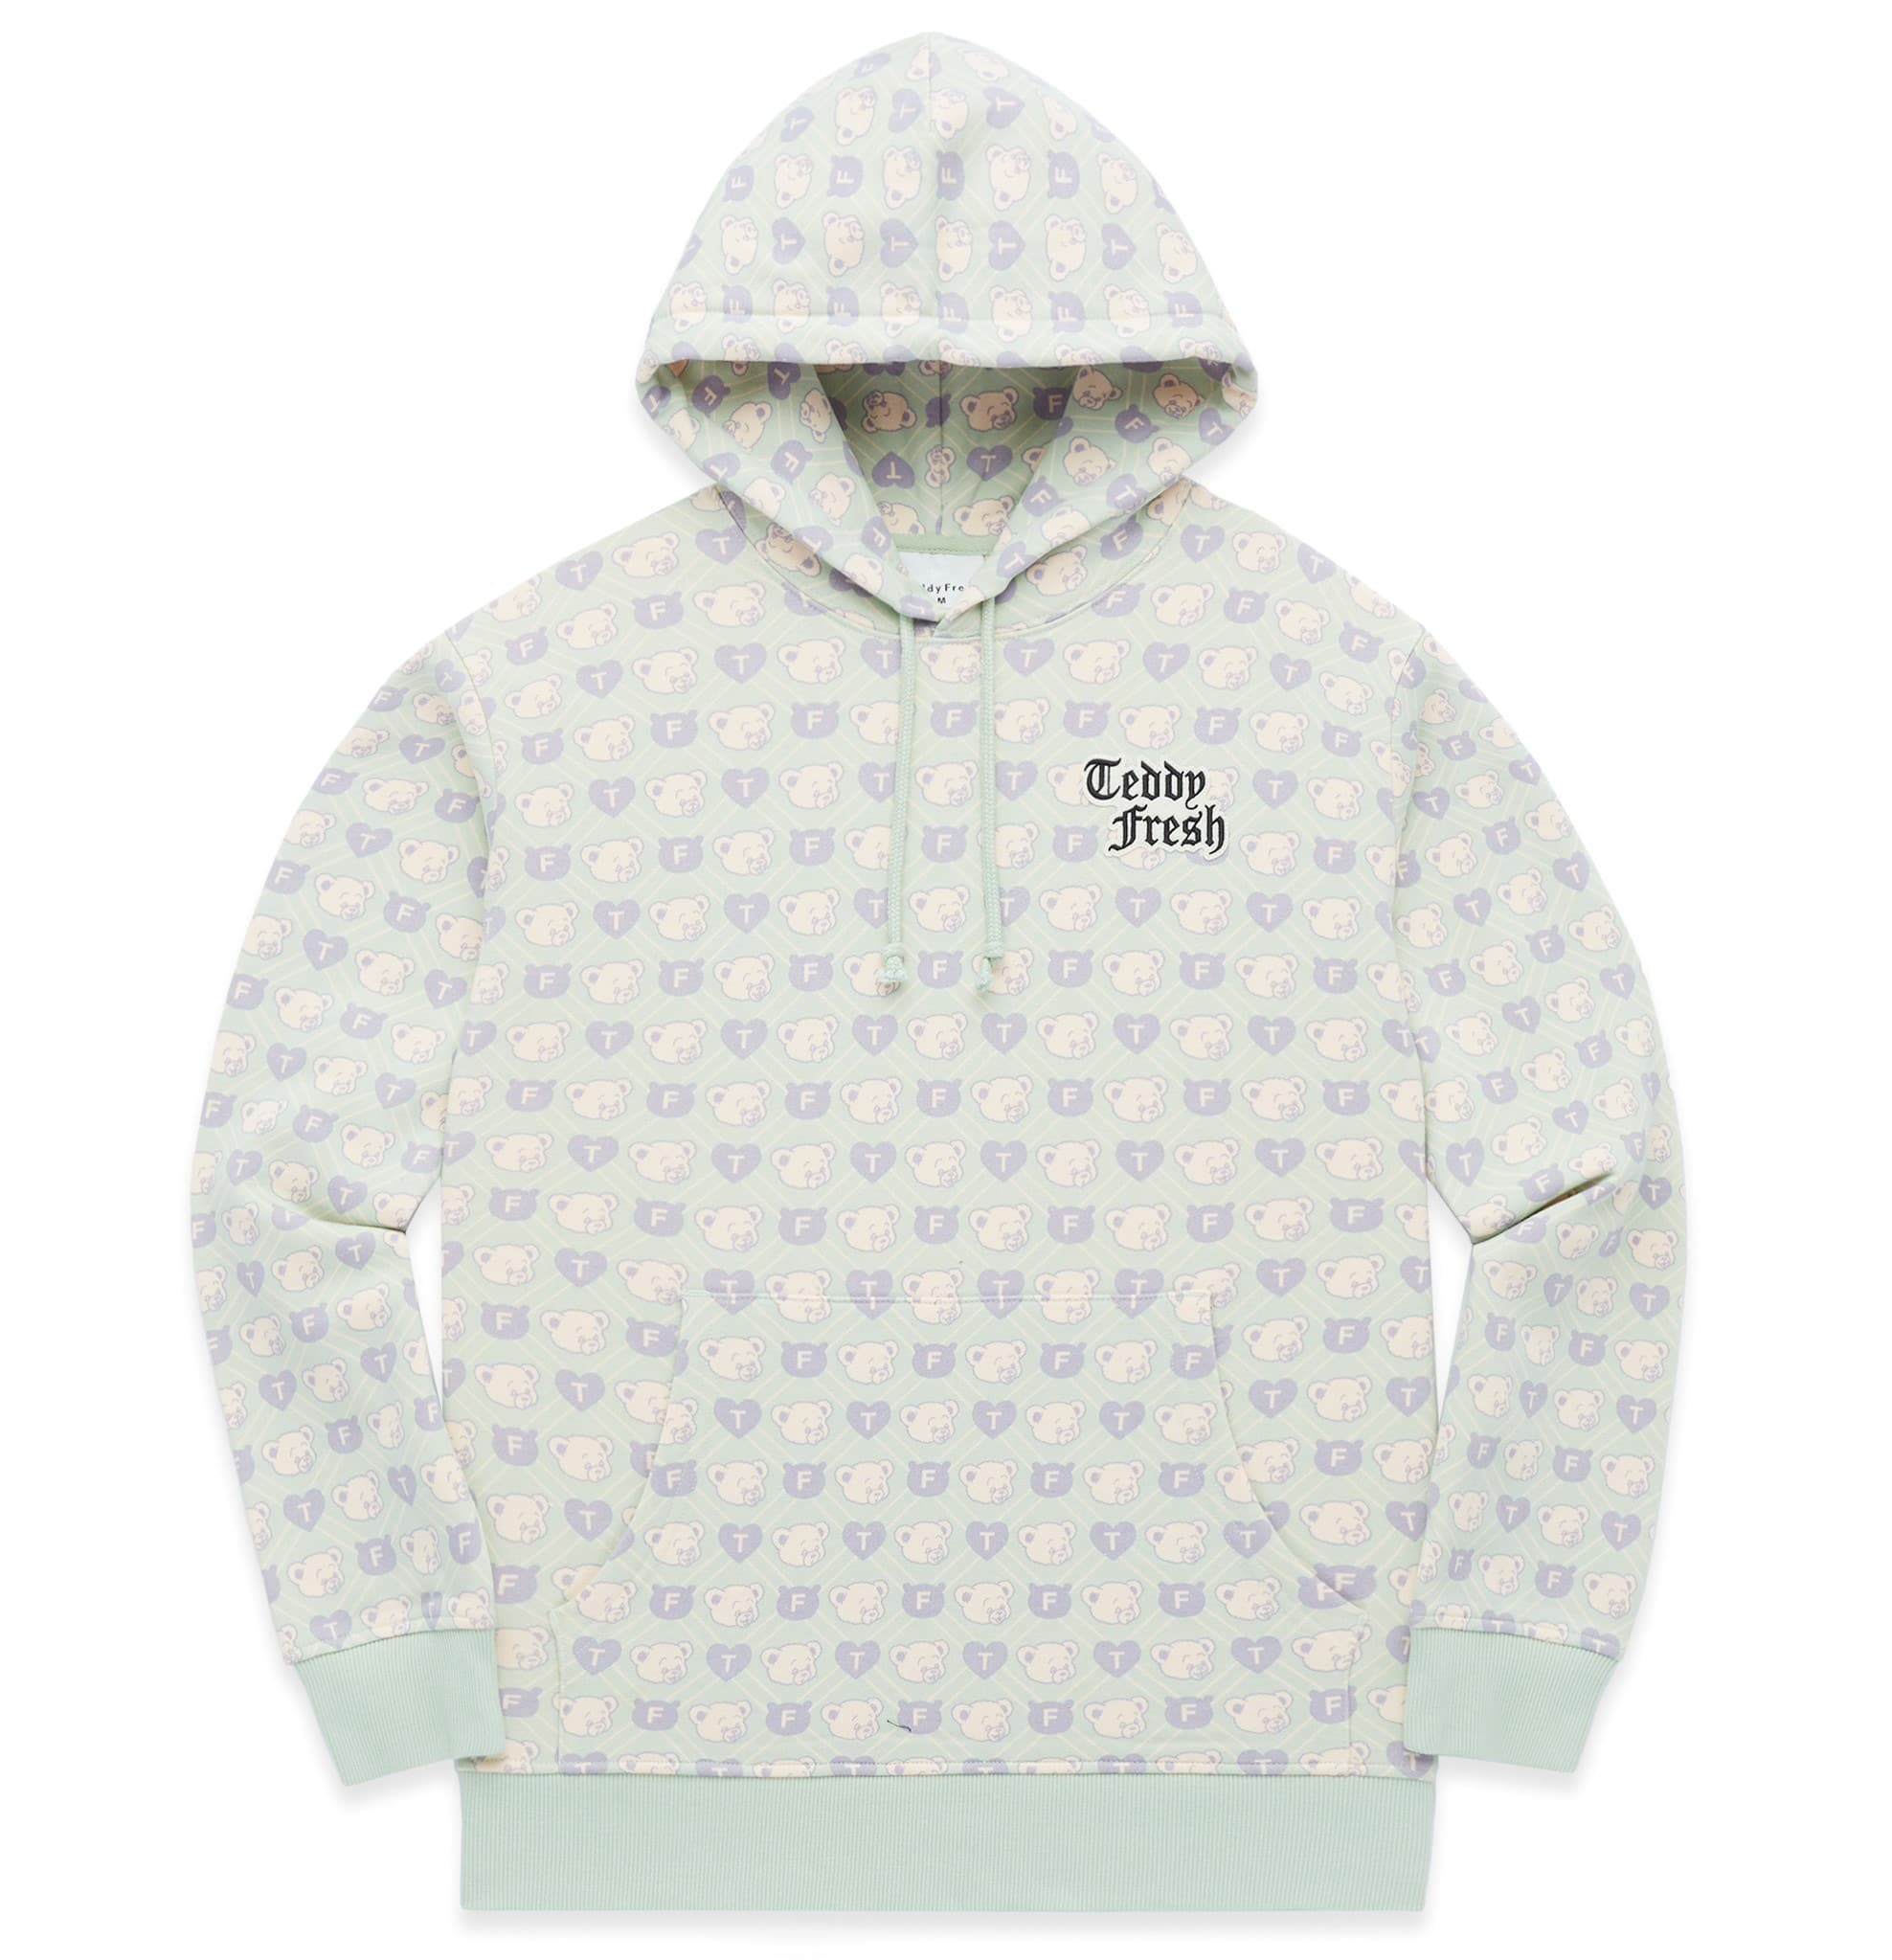 Teddy Fresh doubles down on pastel-colored outerwear for its February collection 13